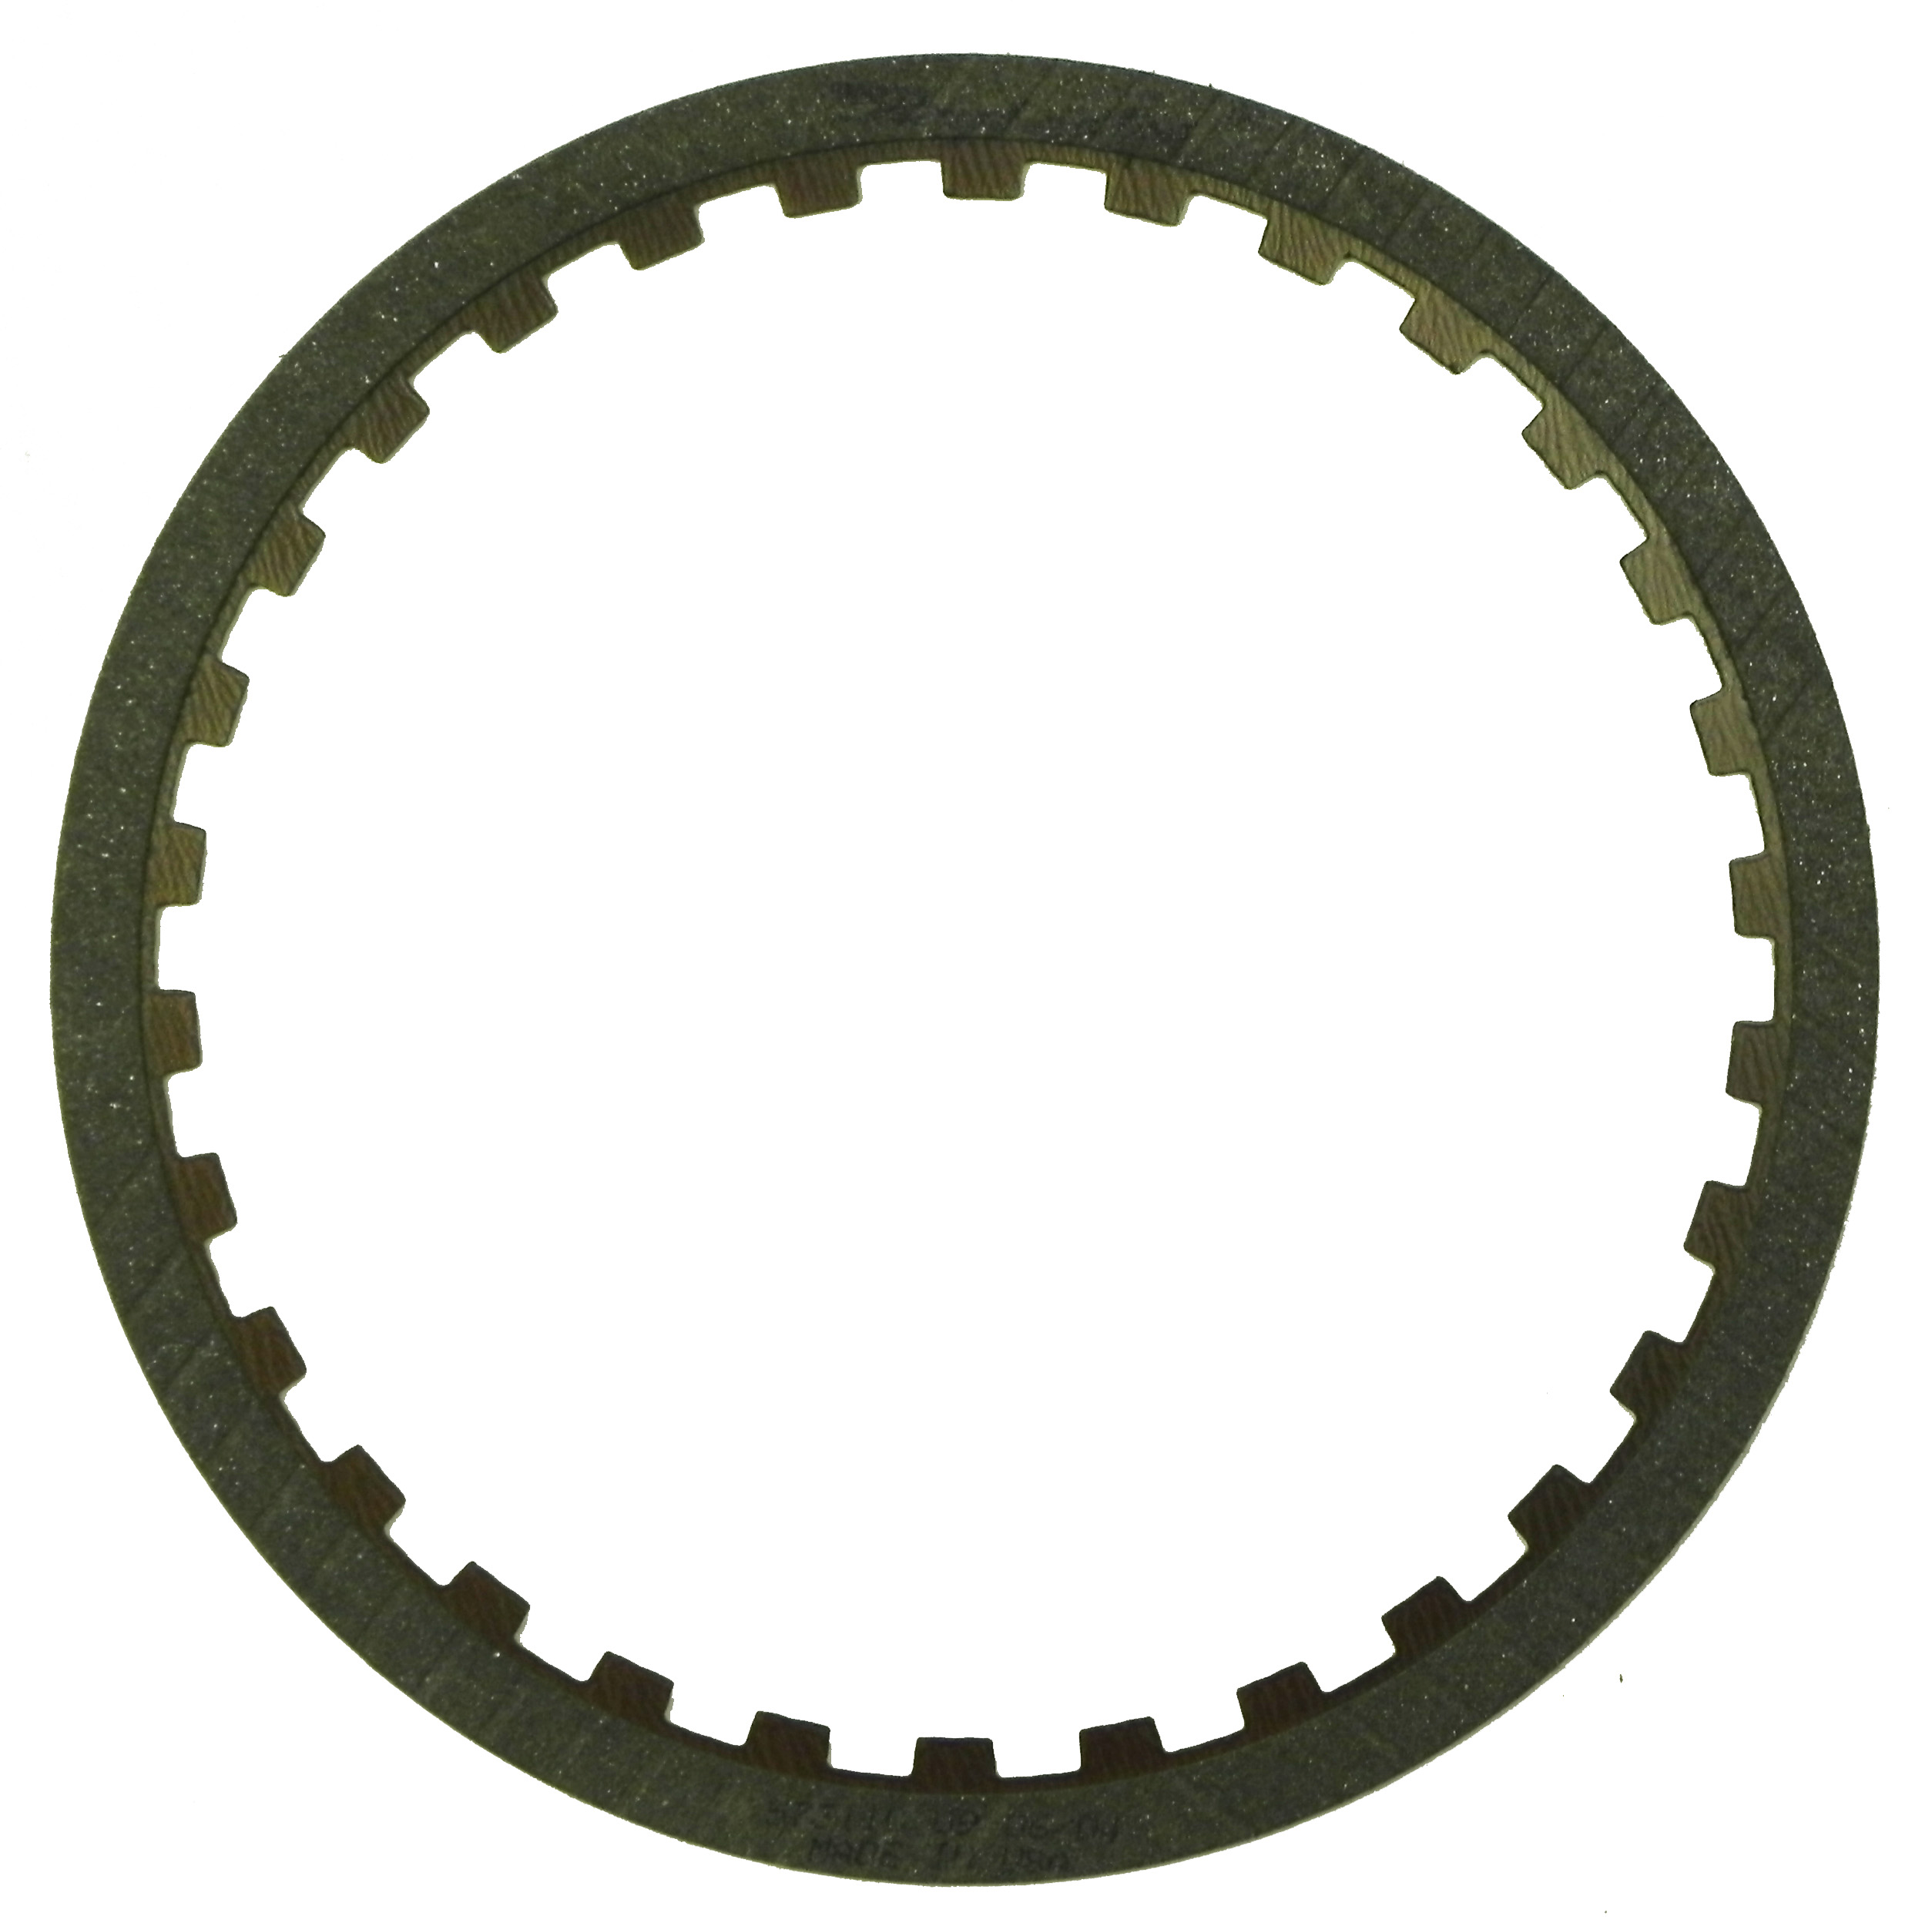 R573110 | 1998-ON Friction Clutch Plate High Energy Low, High Energy